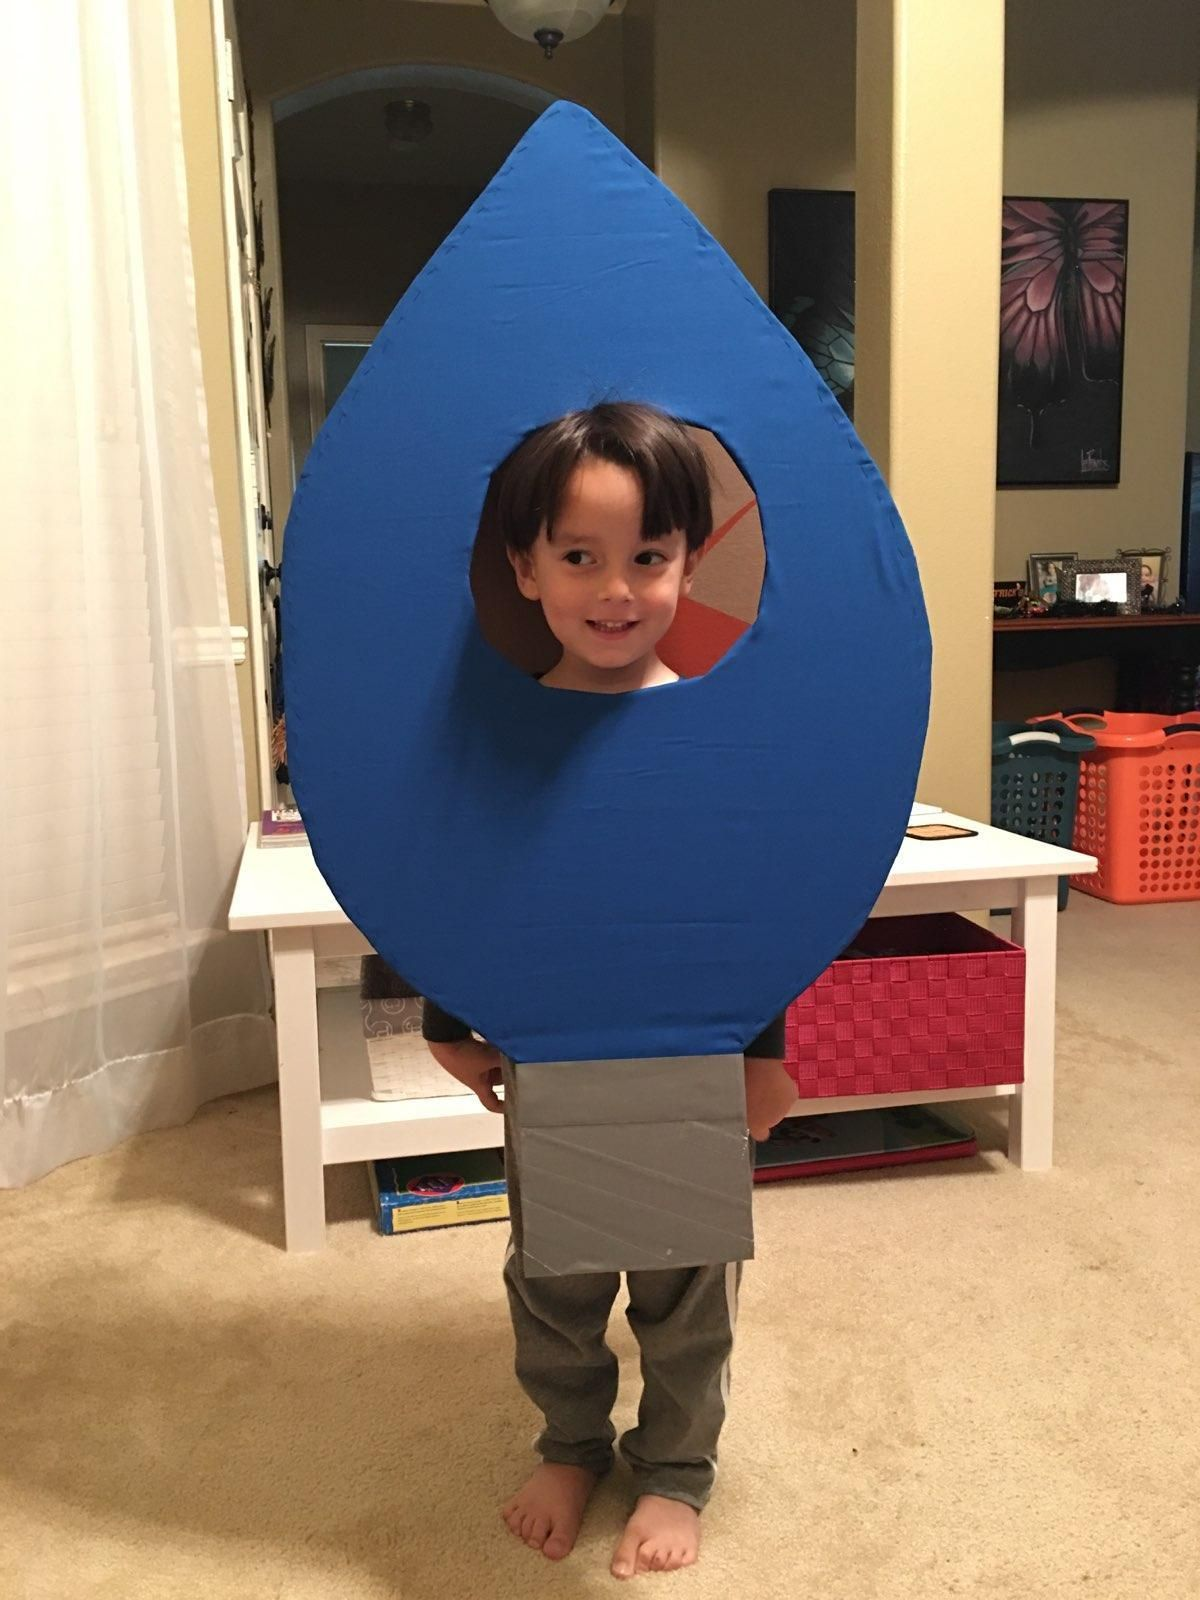 My son wanted to be a blue Christmas light this year